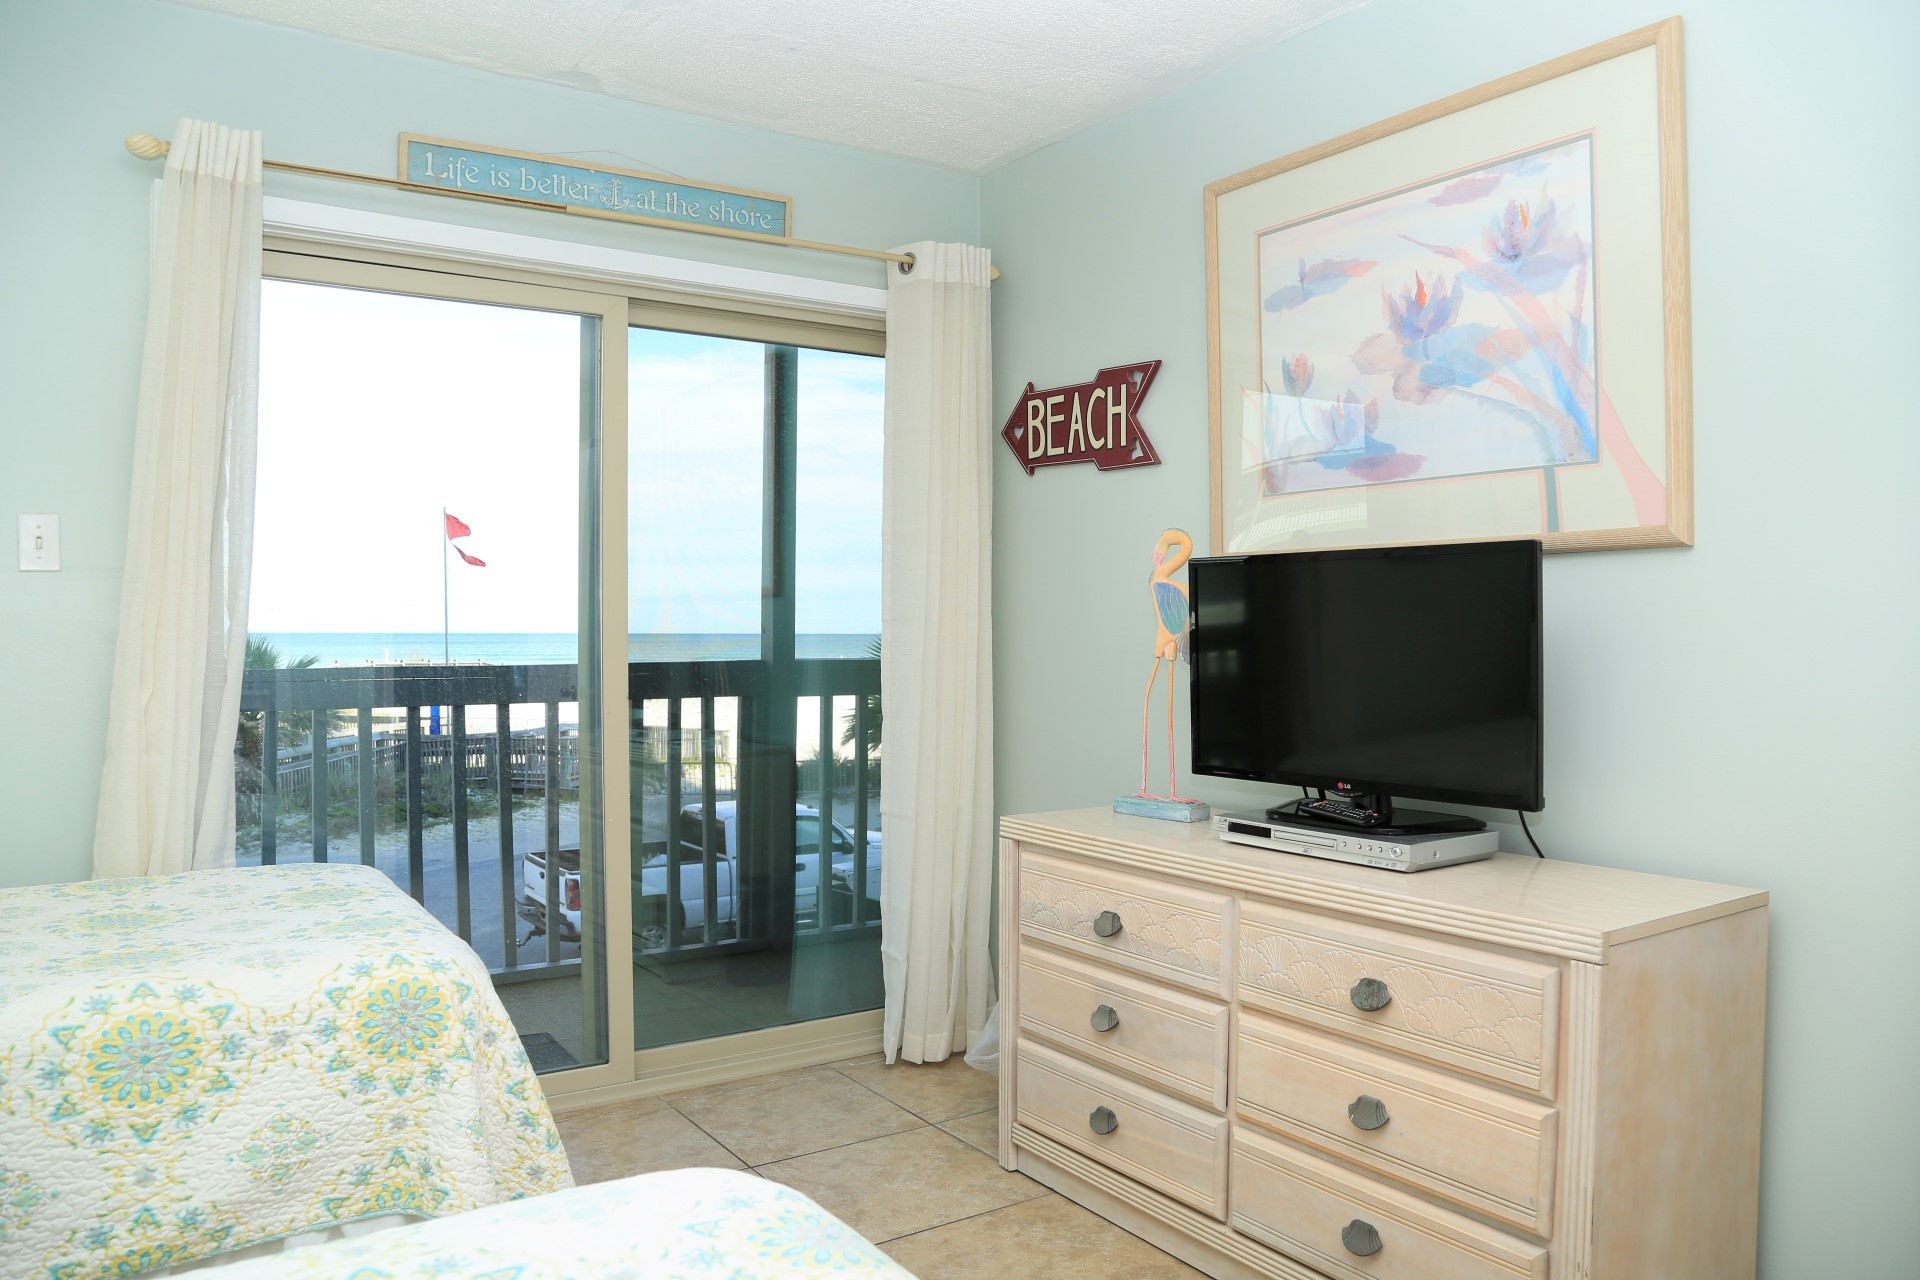 Guest bedroom - TV and balcony access